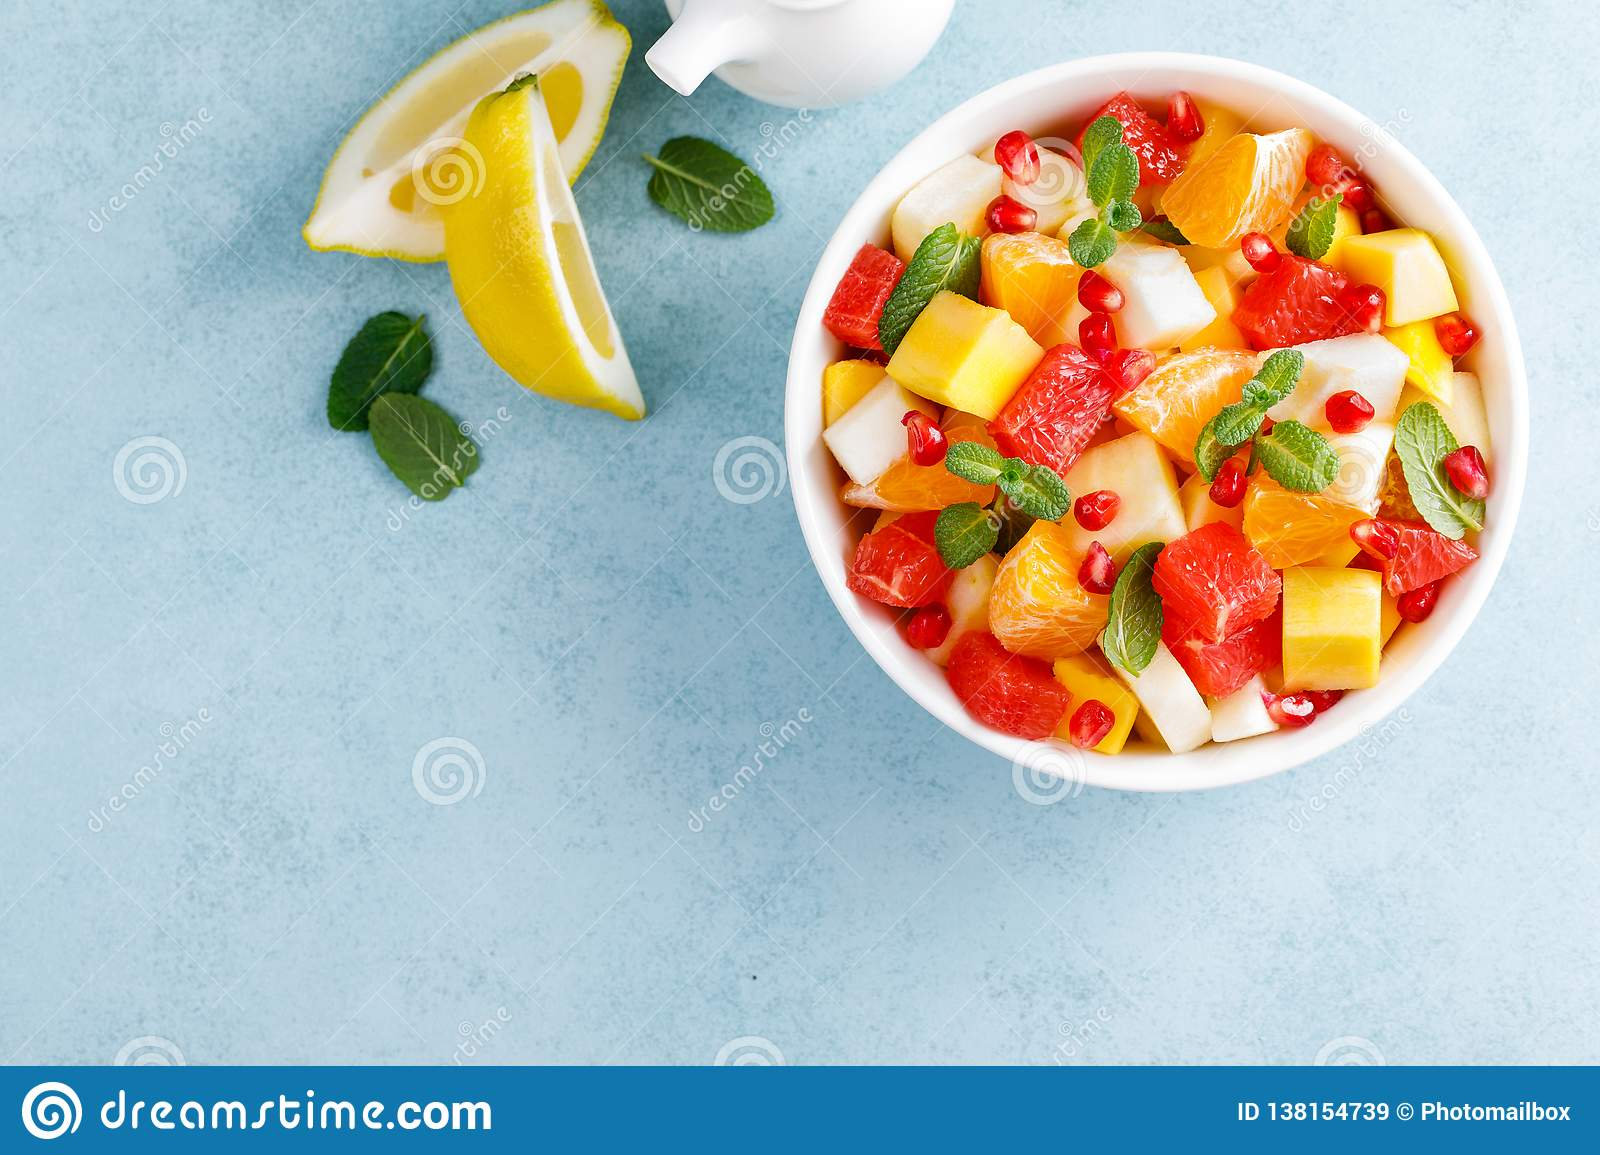 Healthy vegetarian fresh fruit salad with apple, pear, tangerine, grapefruit, mango, pomegranate and lemon juice. Top view